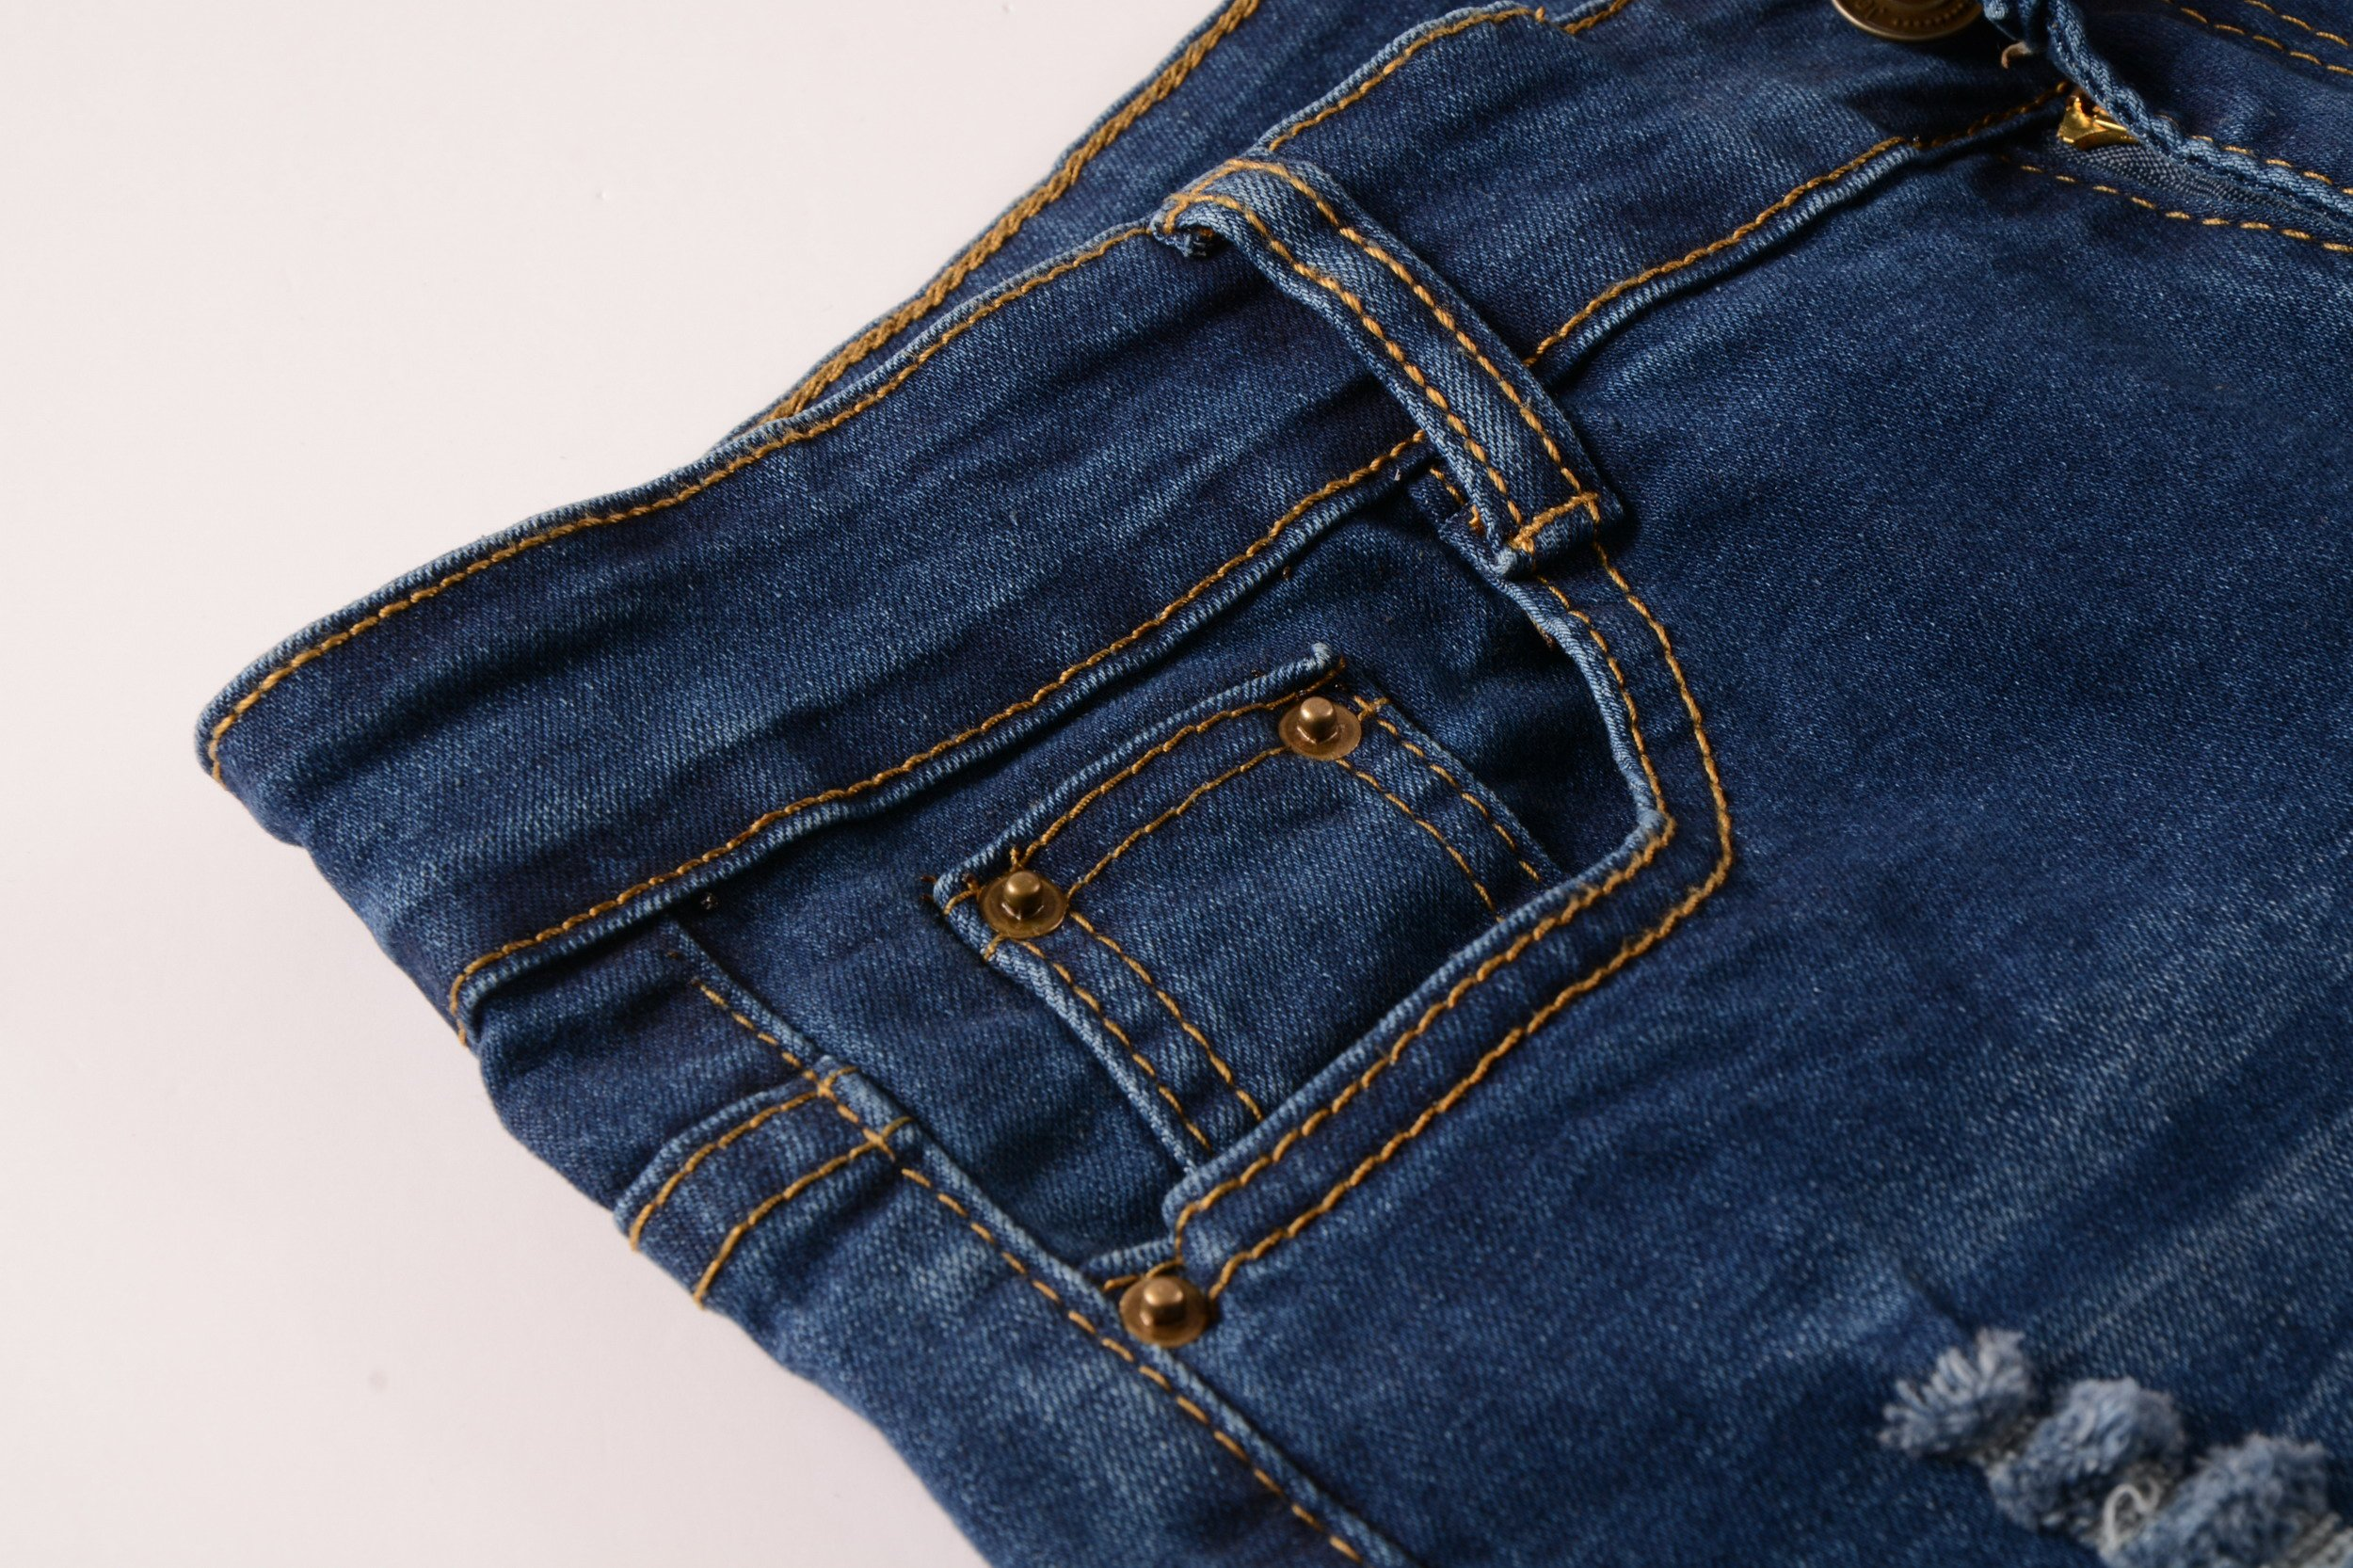 Boy's Fashion Skinny Fit Ripped Distressed Stretch Slim Denim Jeans with Holes 14 by DEITP (Image #3)